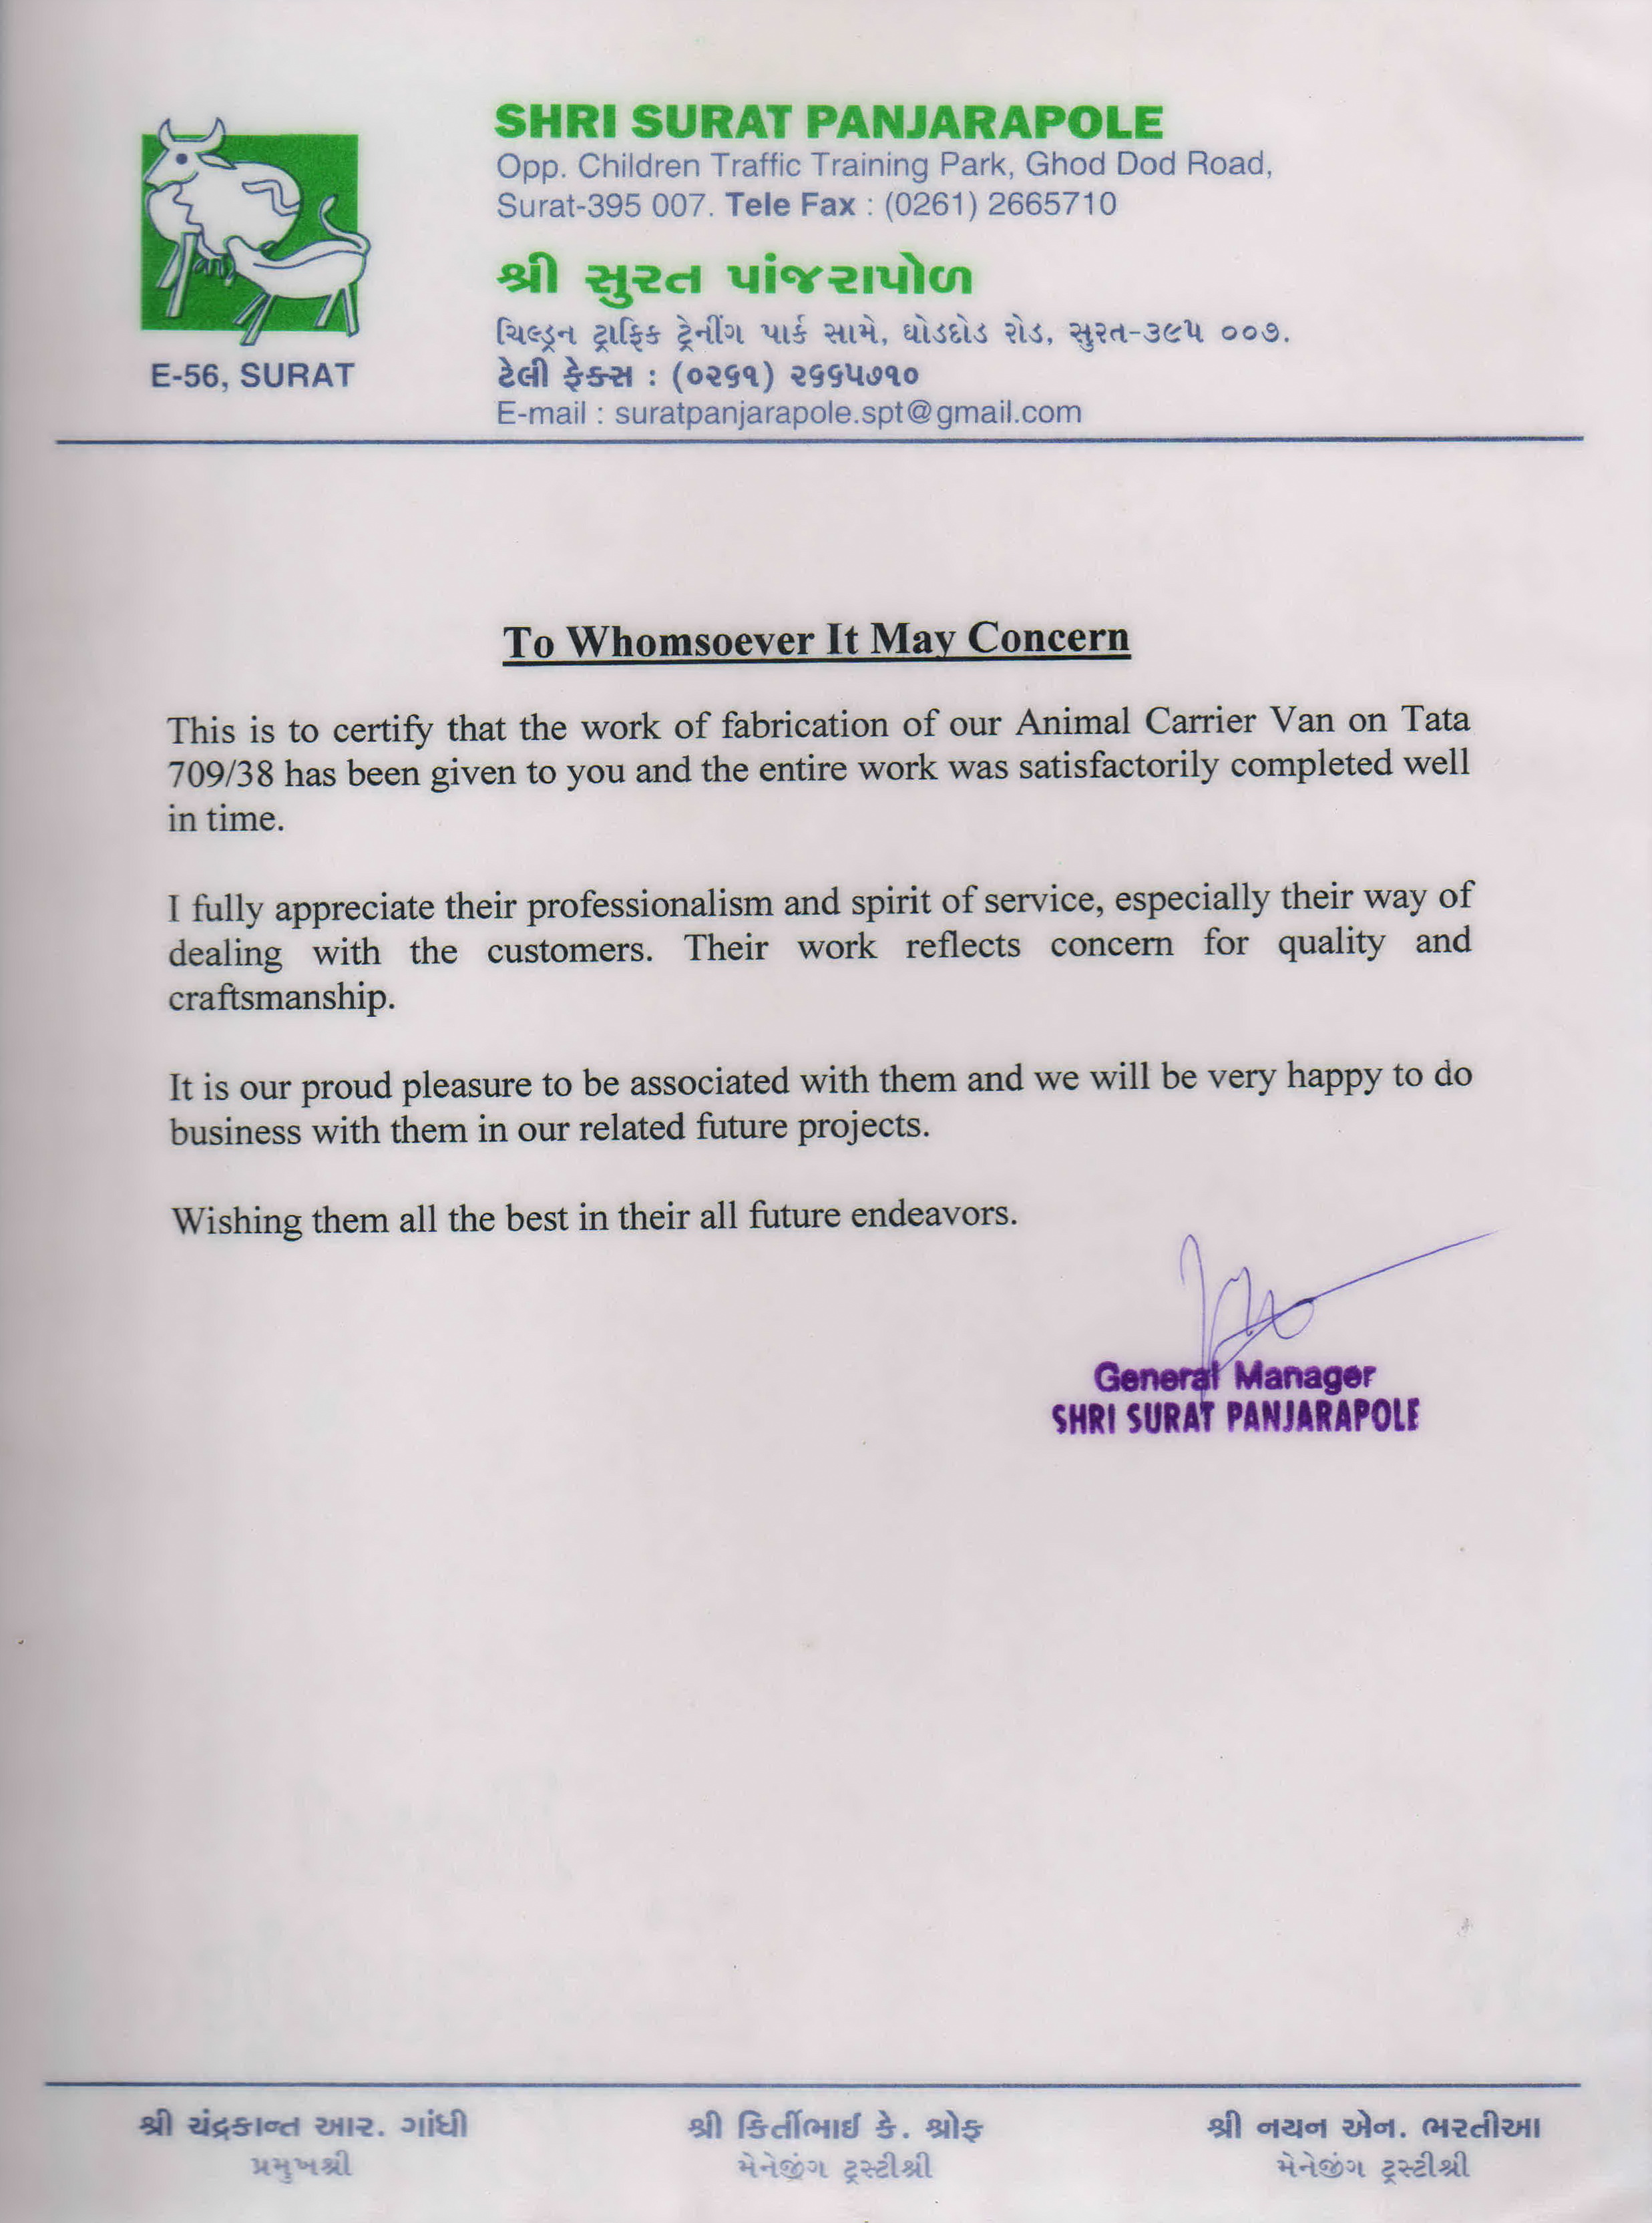 Appreciation Letter   Surat Panjrapole  Appreciation Letter